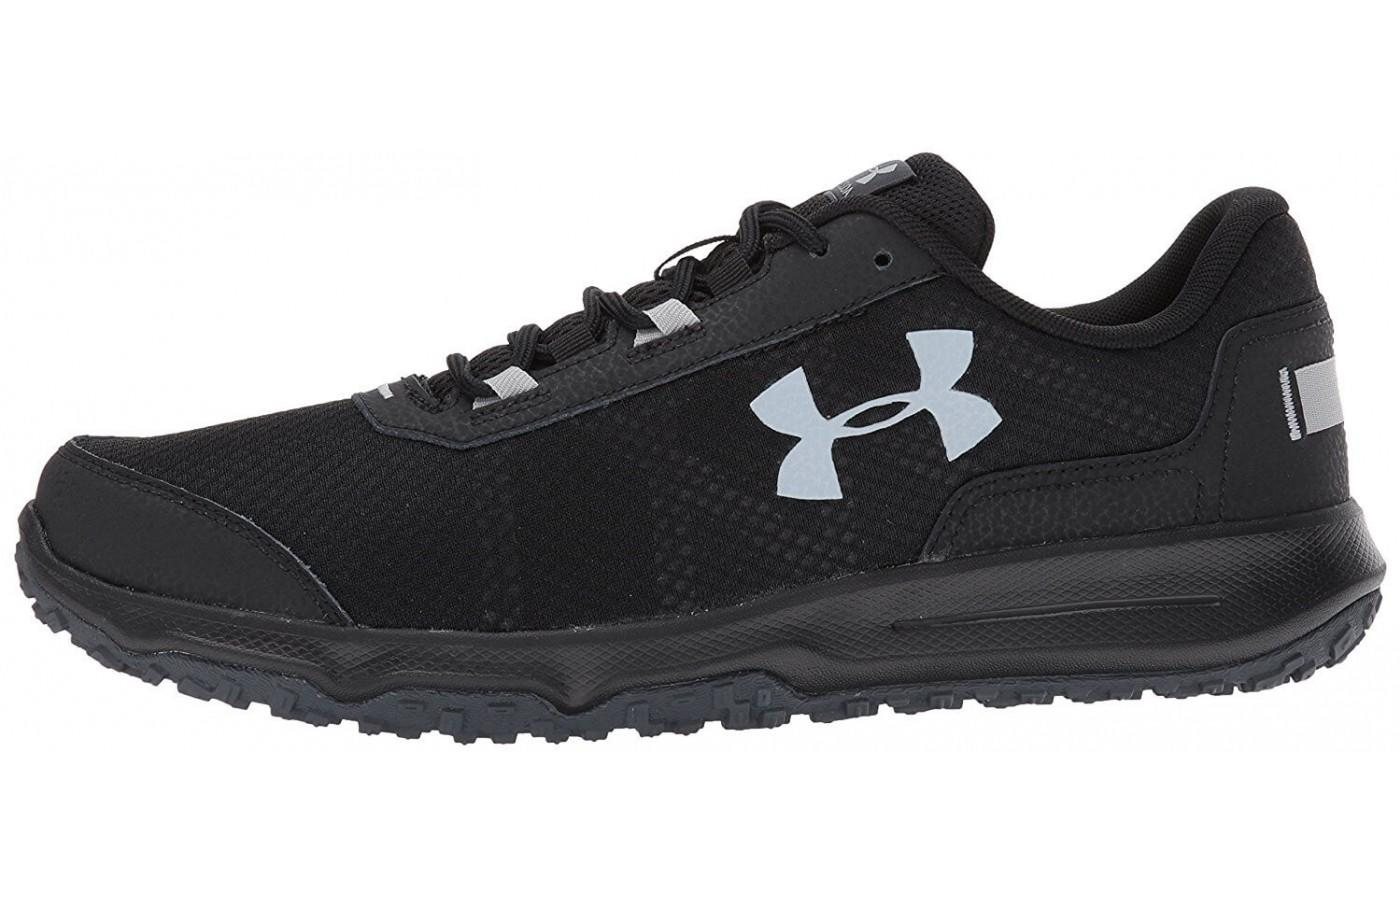 The Under Armour Toccoa comes in a plethora of color schemes.